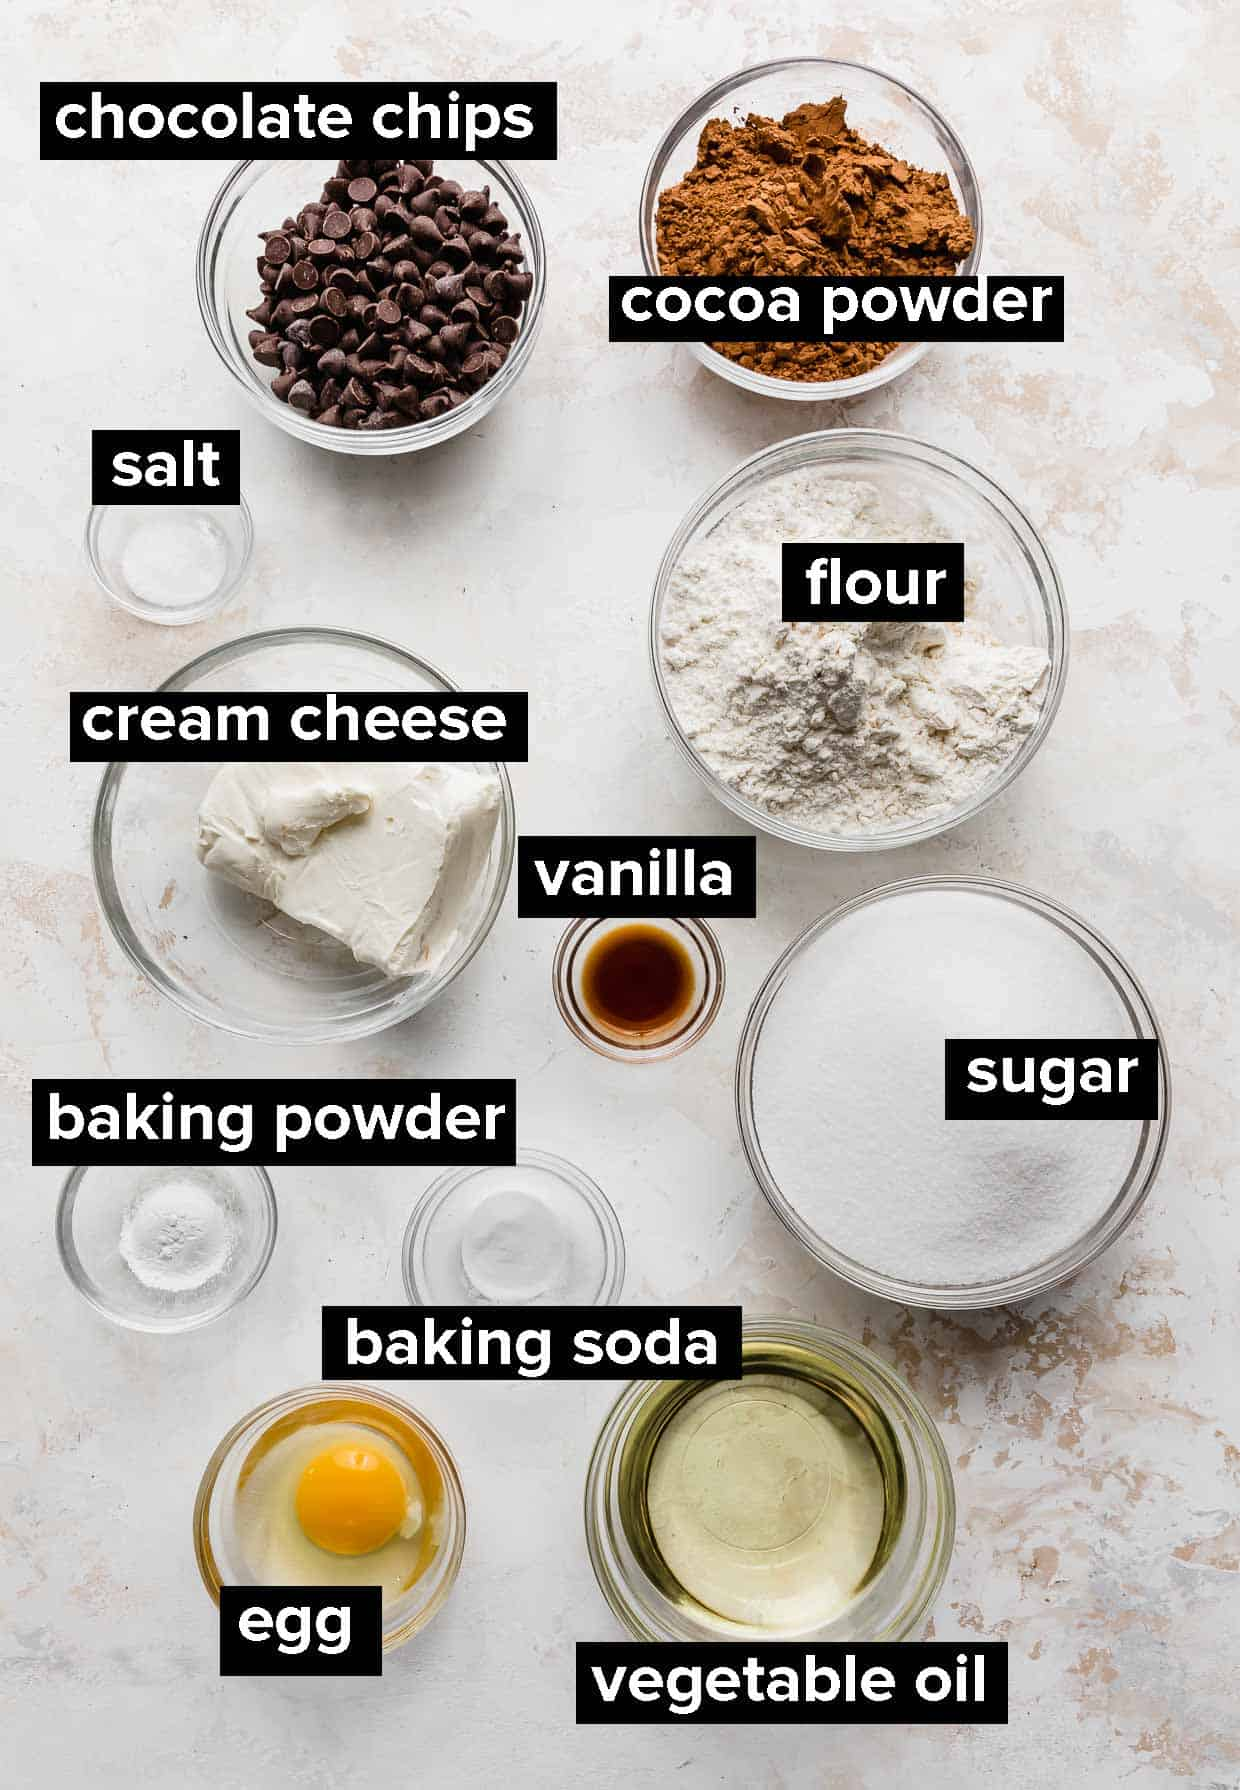 Ingredients used to make Double Chocolate Chip Cookies with cream cheese.